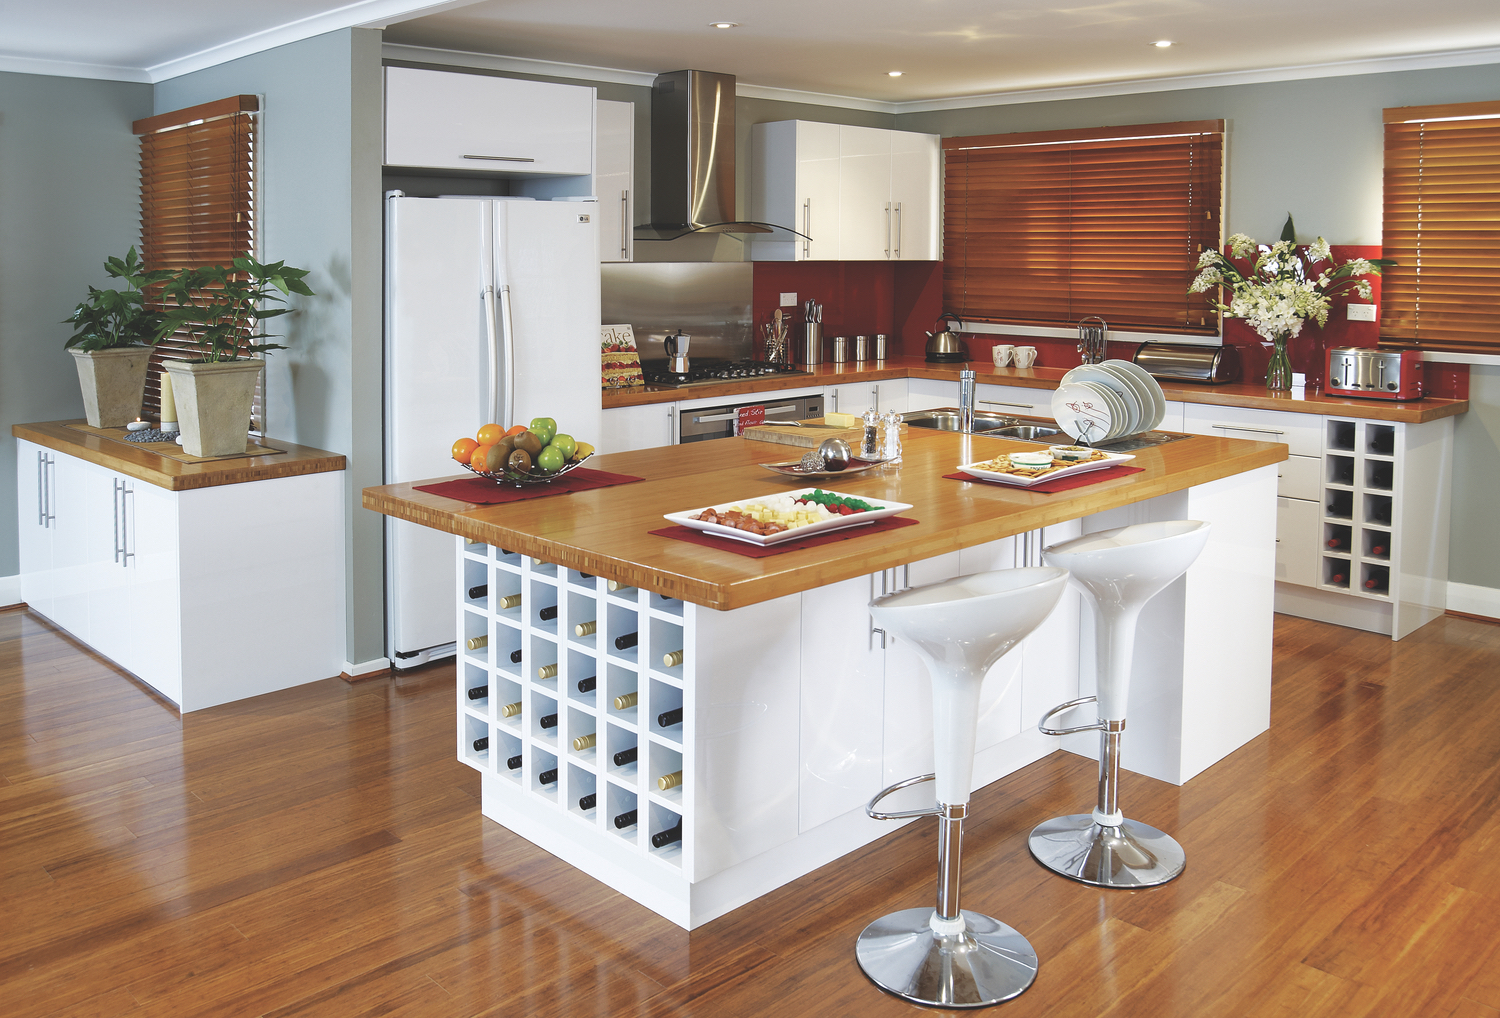 Bunnings Kitchens Flat Packs Kitchen Gallery The Practical Entertainer Kaboodle Kitchen